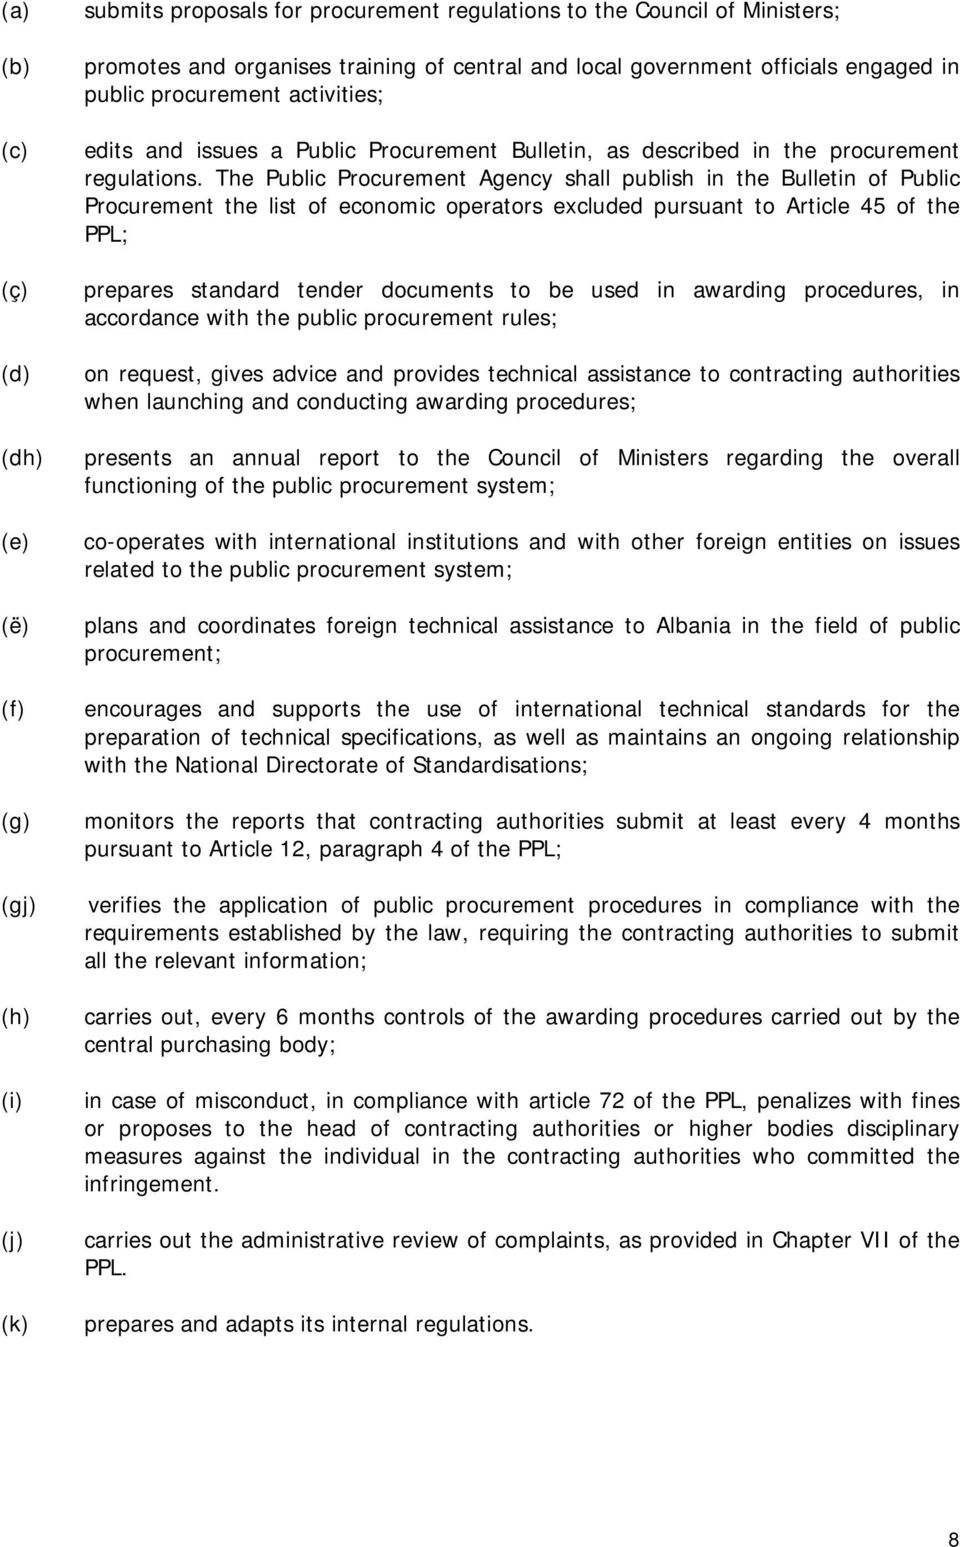 The Public Procurement Agency shall publish in the Bulletin of Public Procurement the list of economic operators excluded pursuant to Article 45 of the PPL; prepares standard tender documents to be